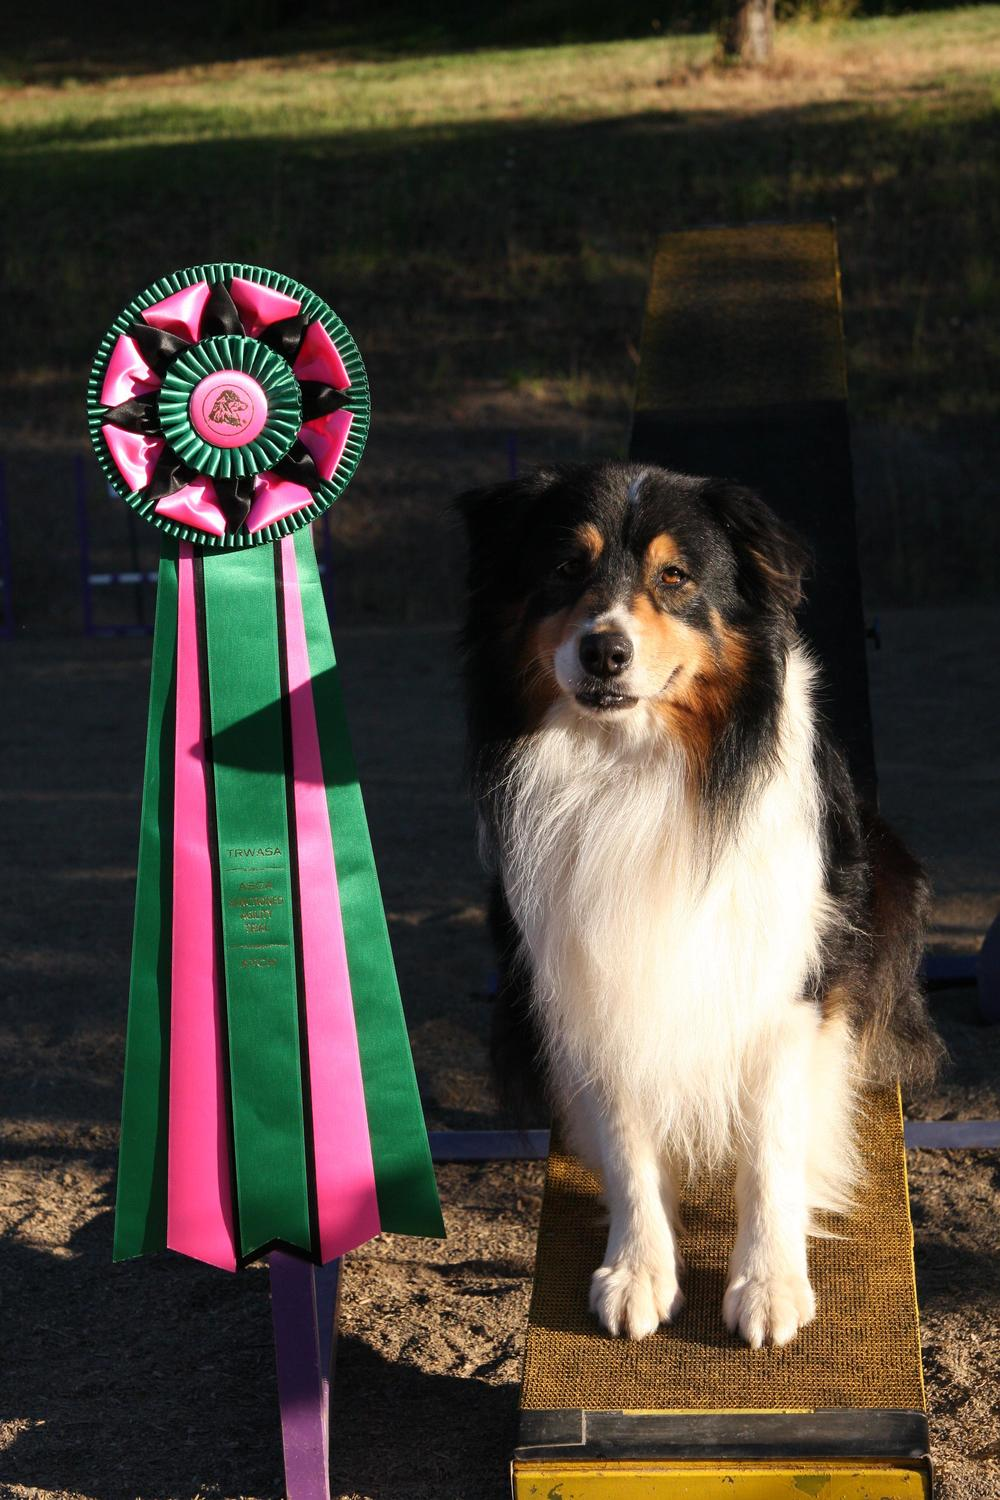 Cruiser  - ATCH 4 Crystal Canyon's Cruisin On ATDd,OTDsc gave us 4 HOF points - all three stock titles plus the agility title. He also has contributed 5 titles towards HOFX